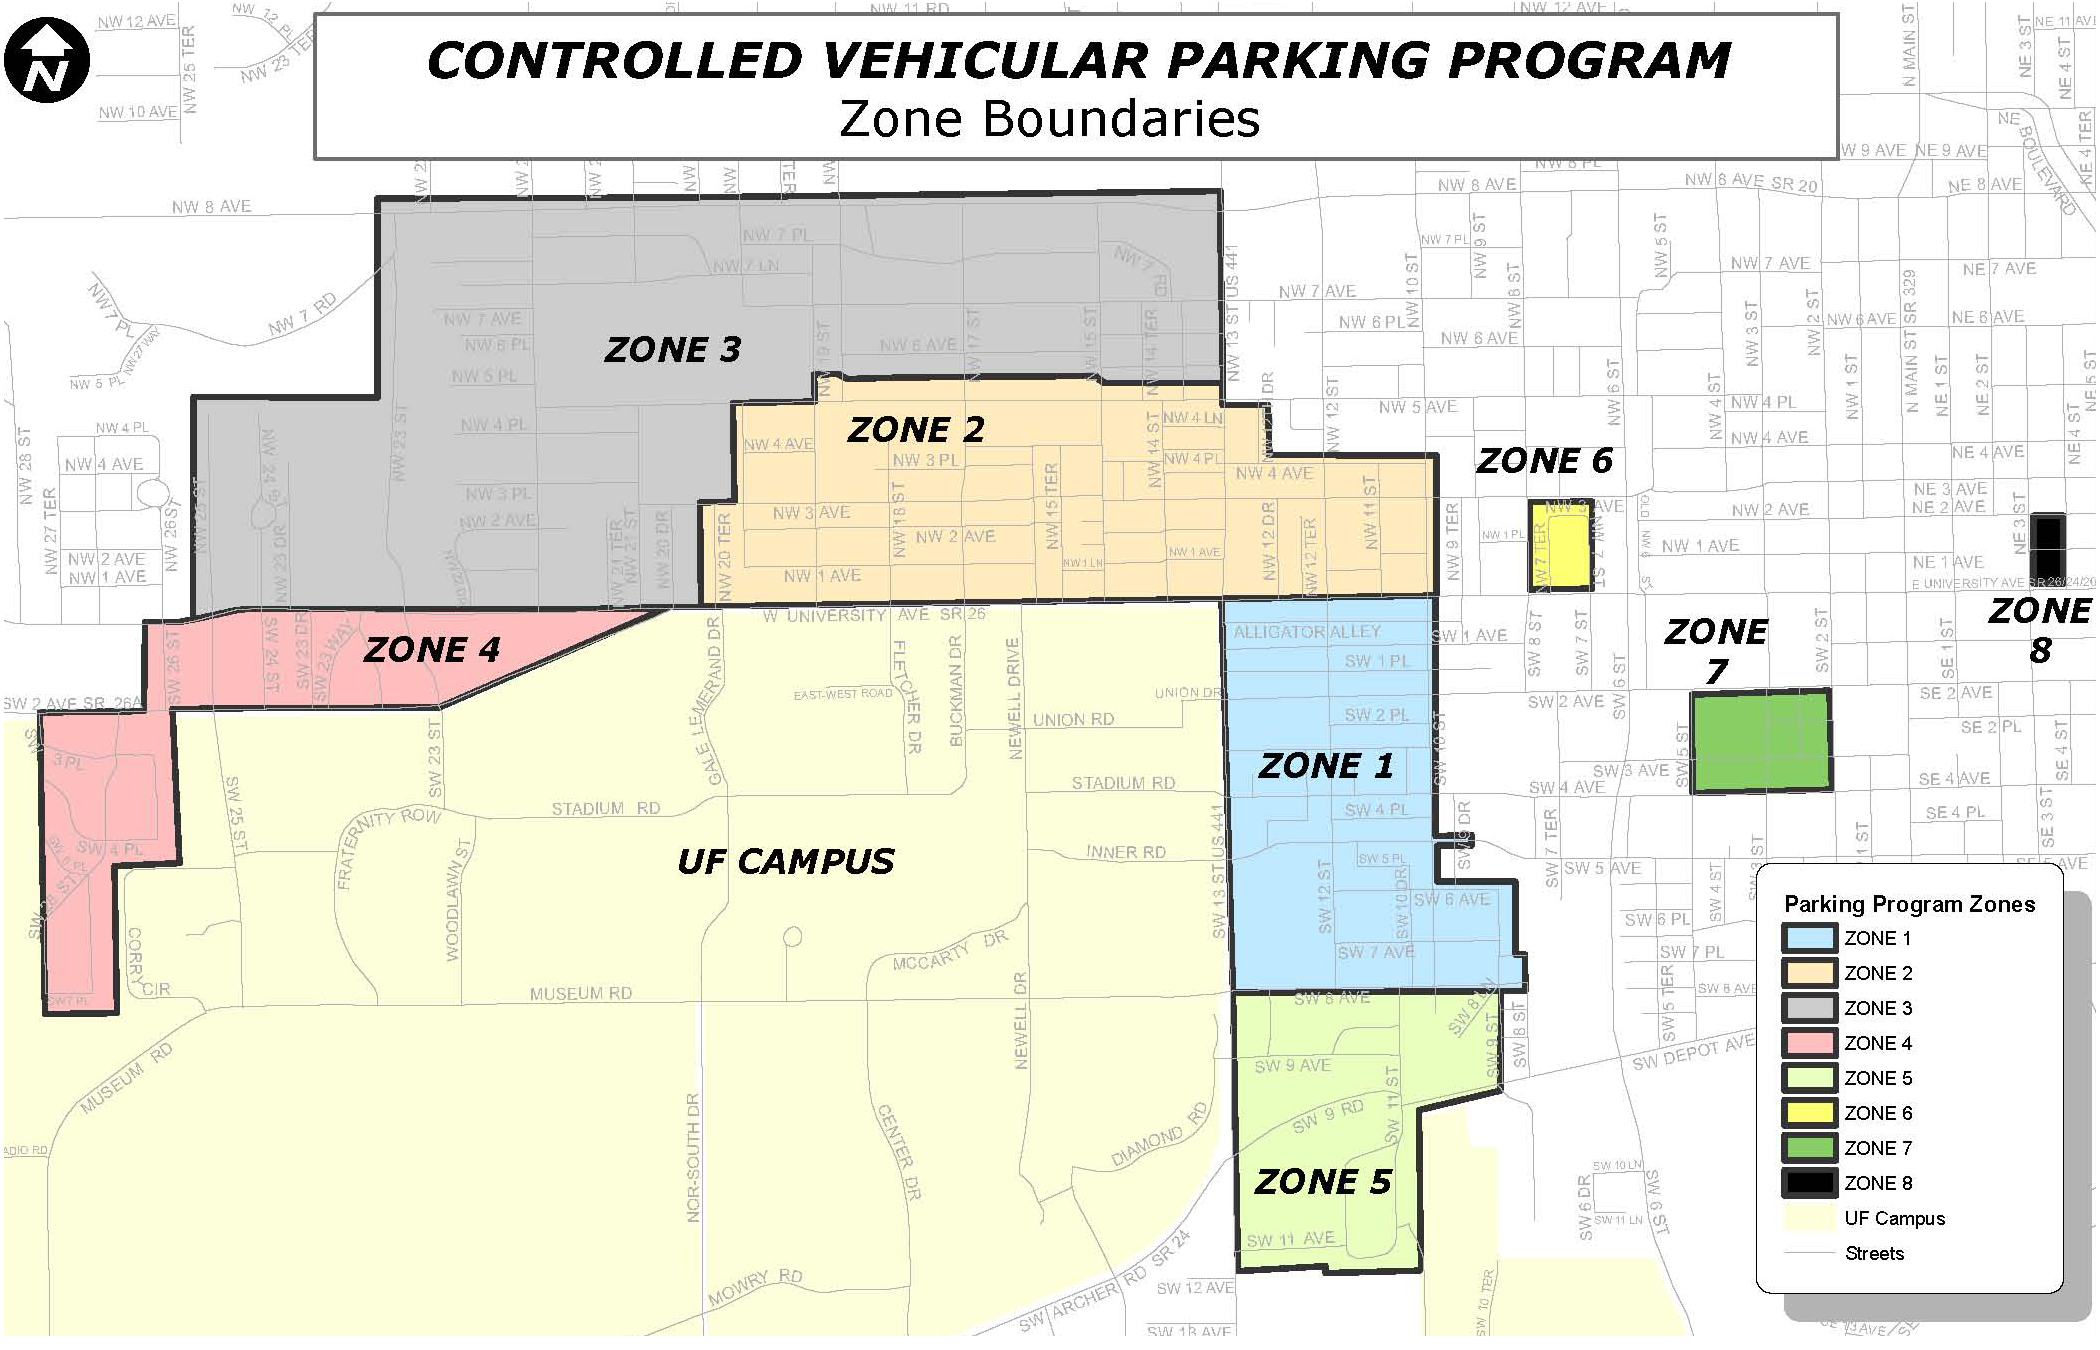 Gainesville Neighborhood Parking Map | GatorPads on st. petersburg-clearwater map, fort myers naples map, dallas co map, ocala fl map, winnsboro map, beckley map, alachua county fl zip code map, ladonia map, toccoa falls college map, san francisco intl airport map, hollins map, w palm beach map, city of mcdonough ga map, narcoossee map, forsyth map, south fort myers map, gainsville fl map, florida map, ferrum map, raytown map,